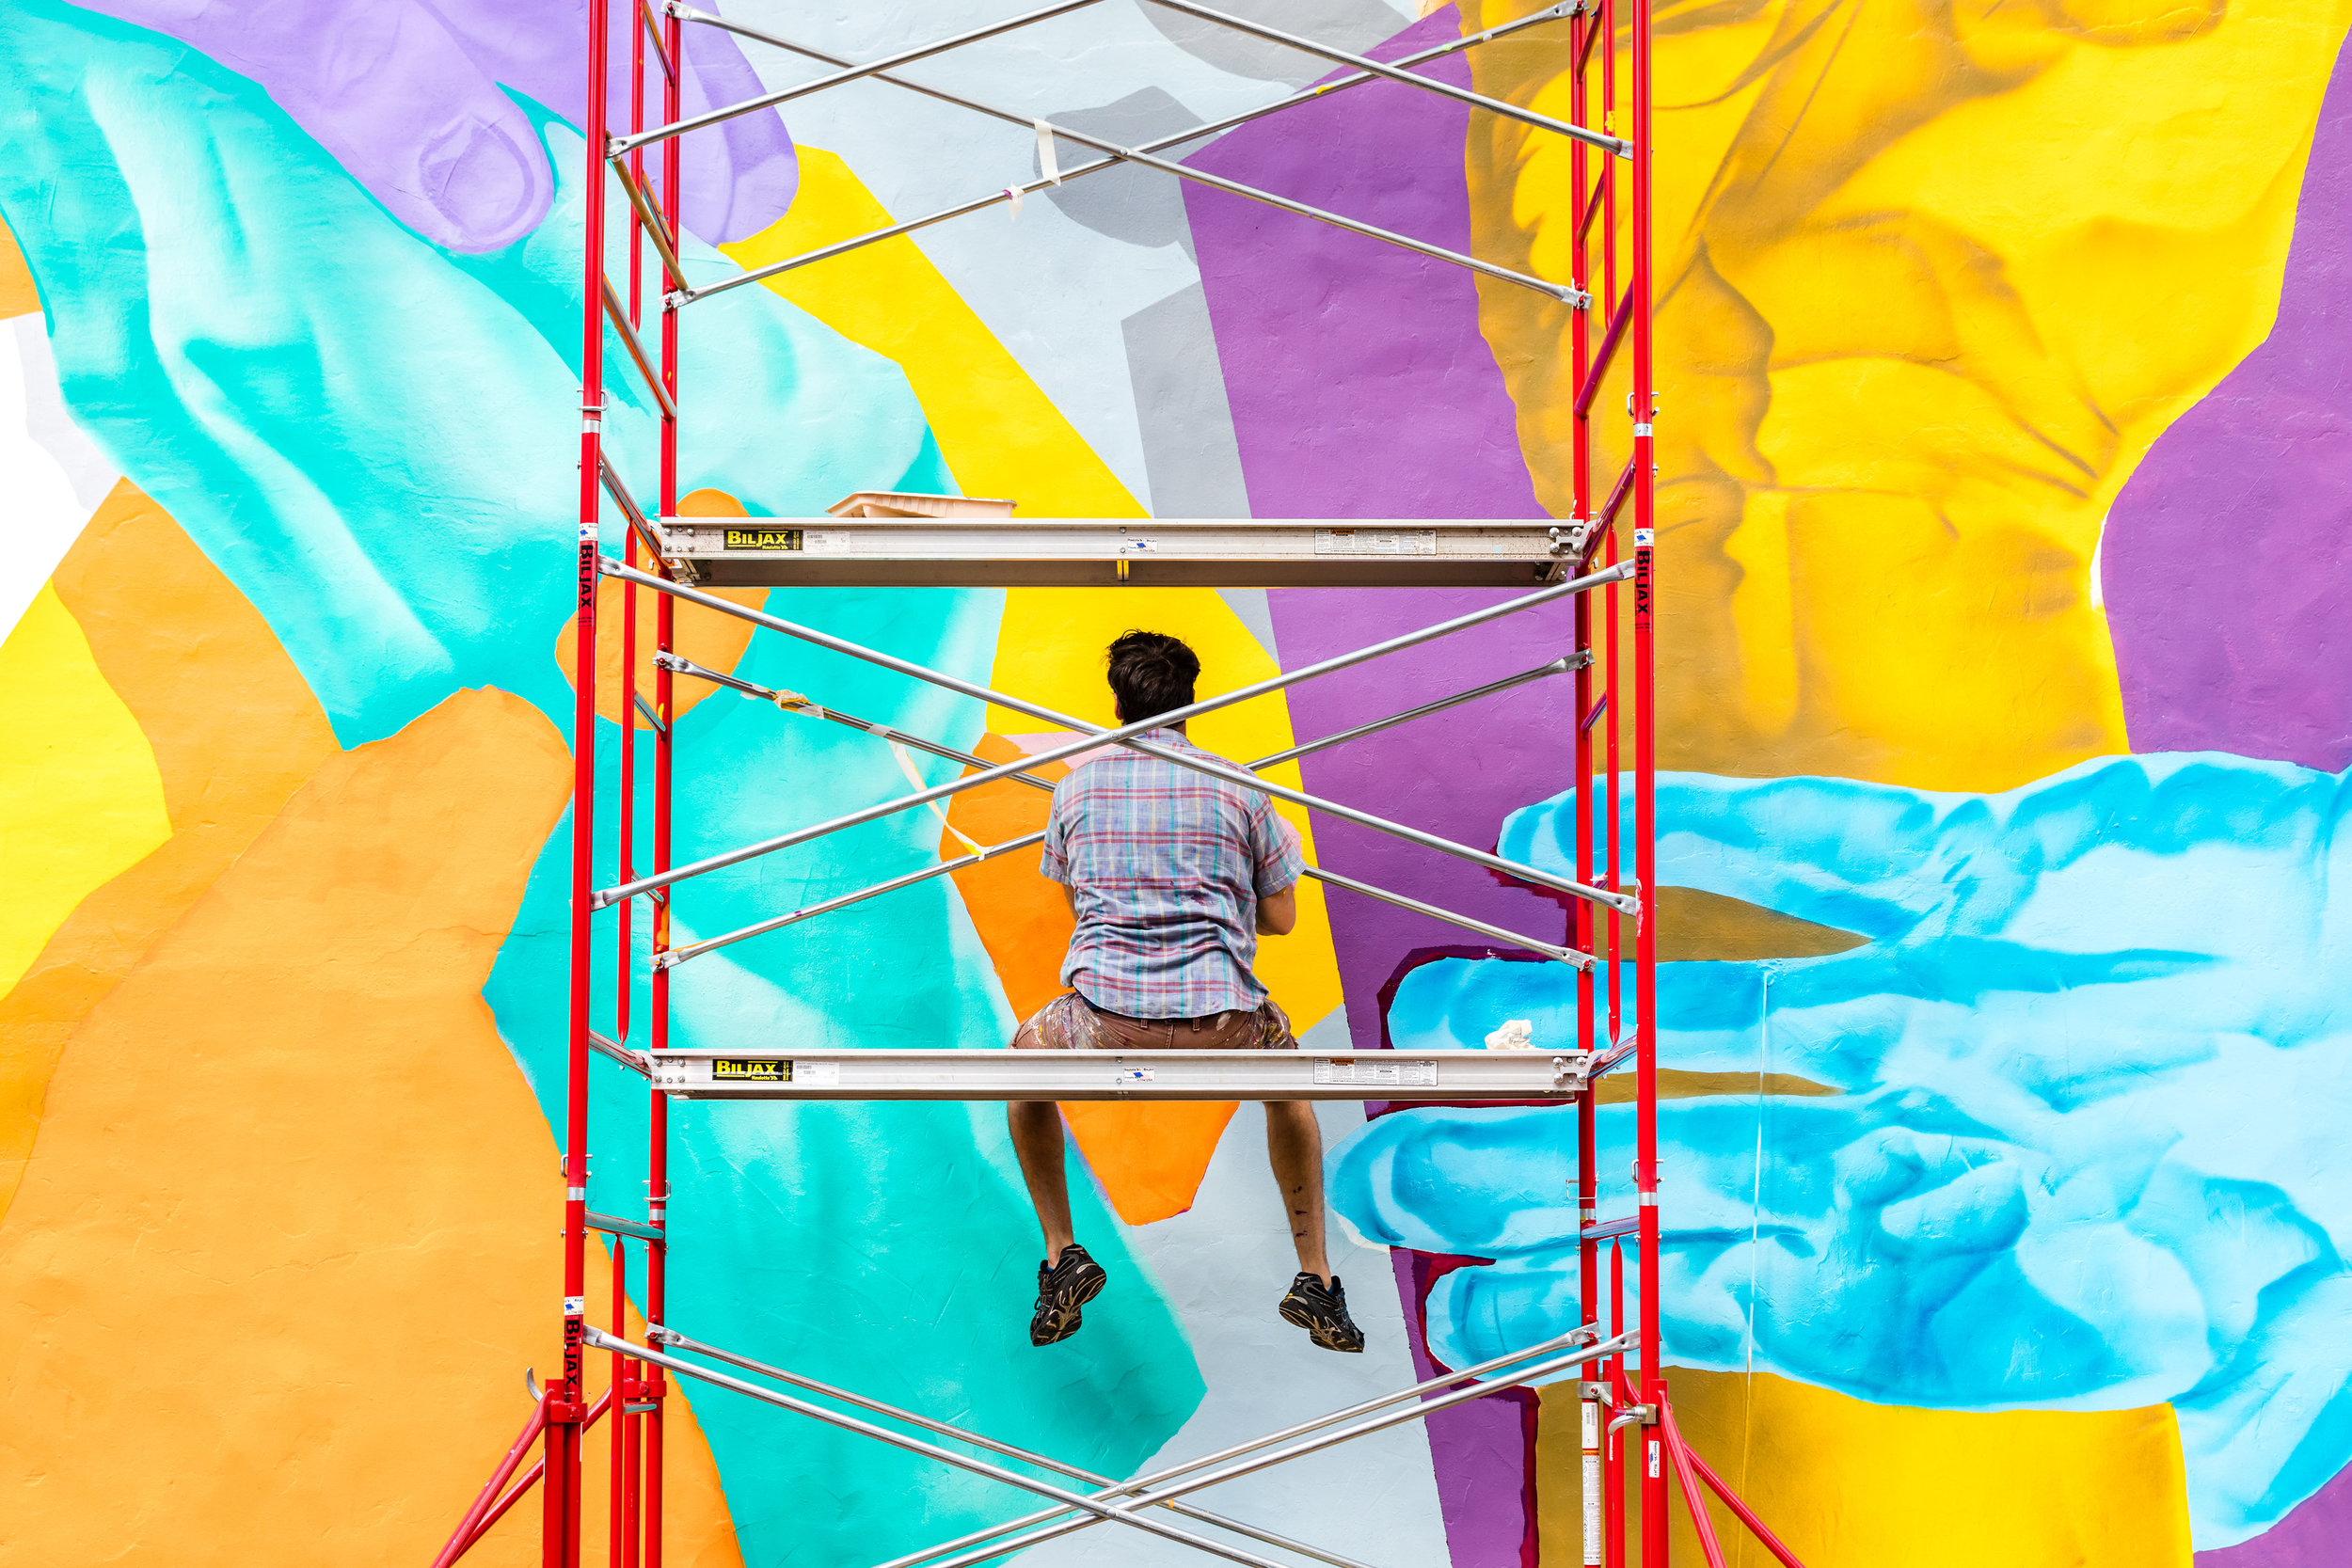 Landon_Wise_Photography_MuralFest-184.jpg